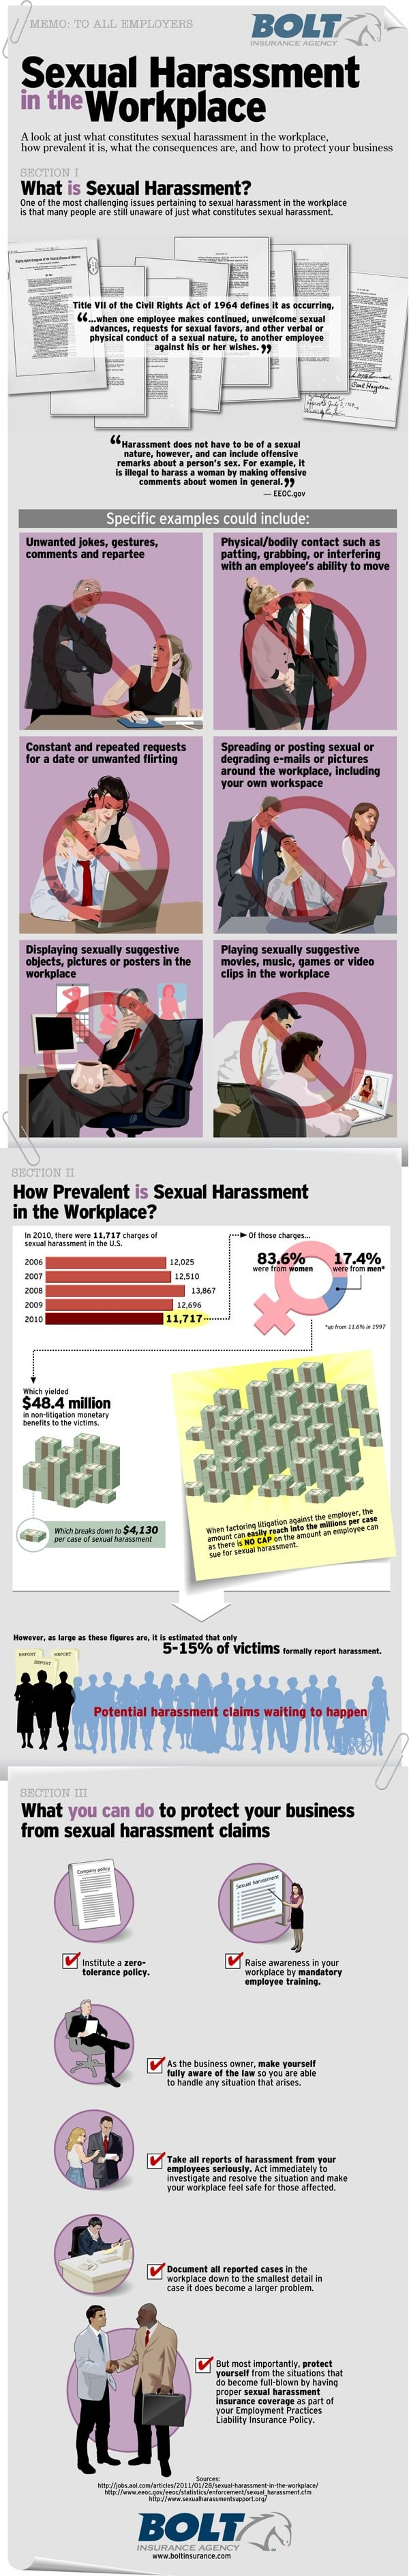 How to prevent sexual harassment photos 47